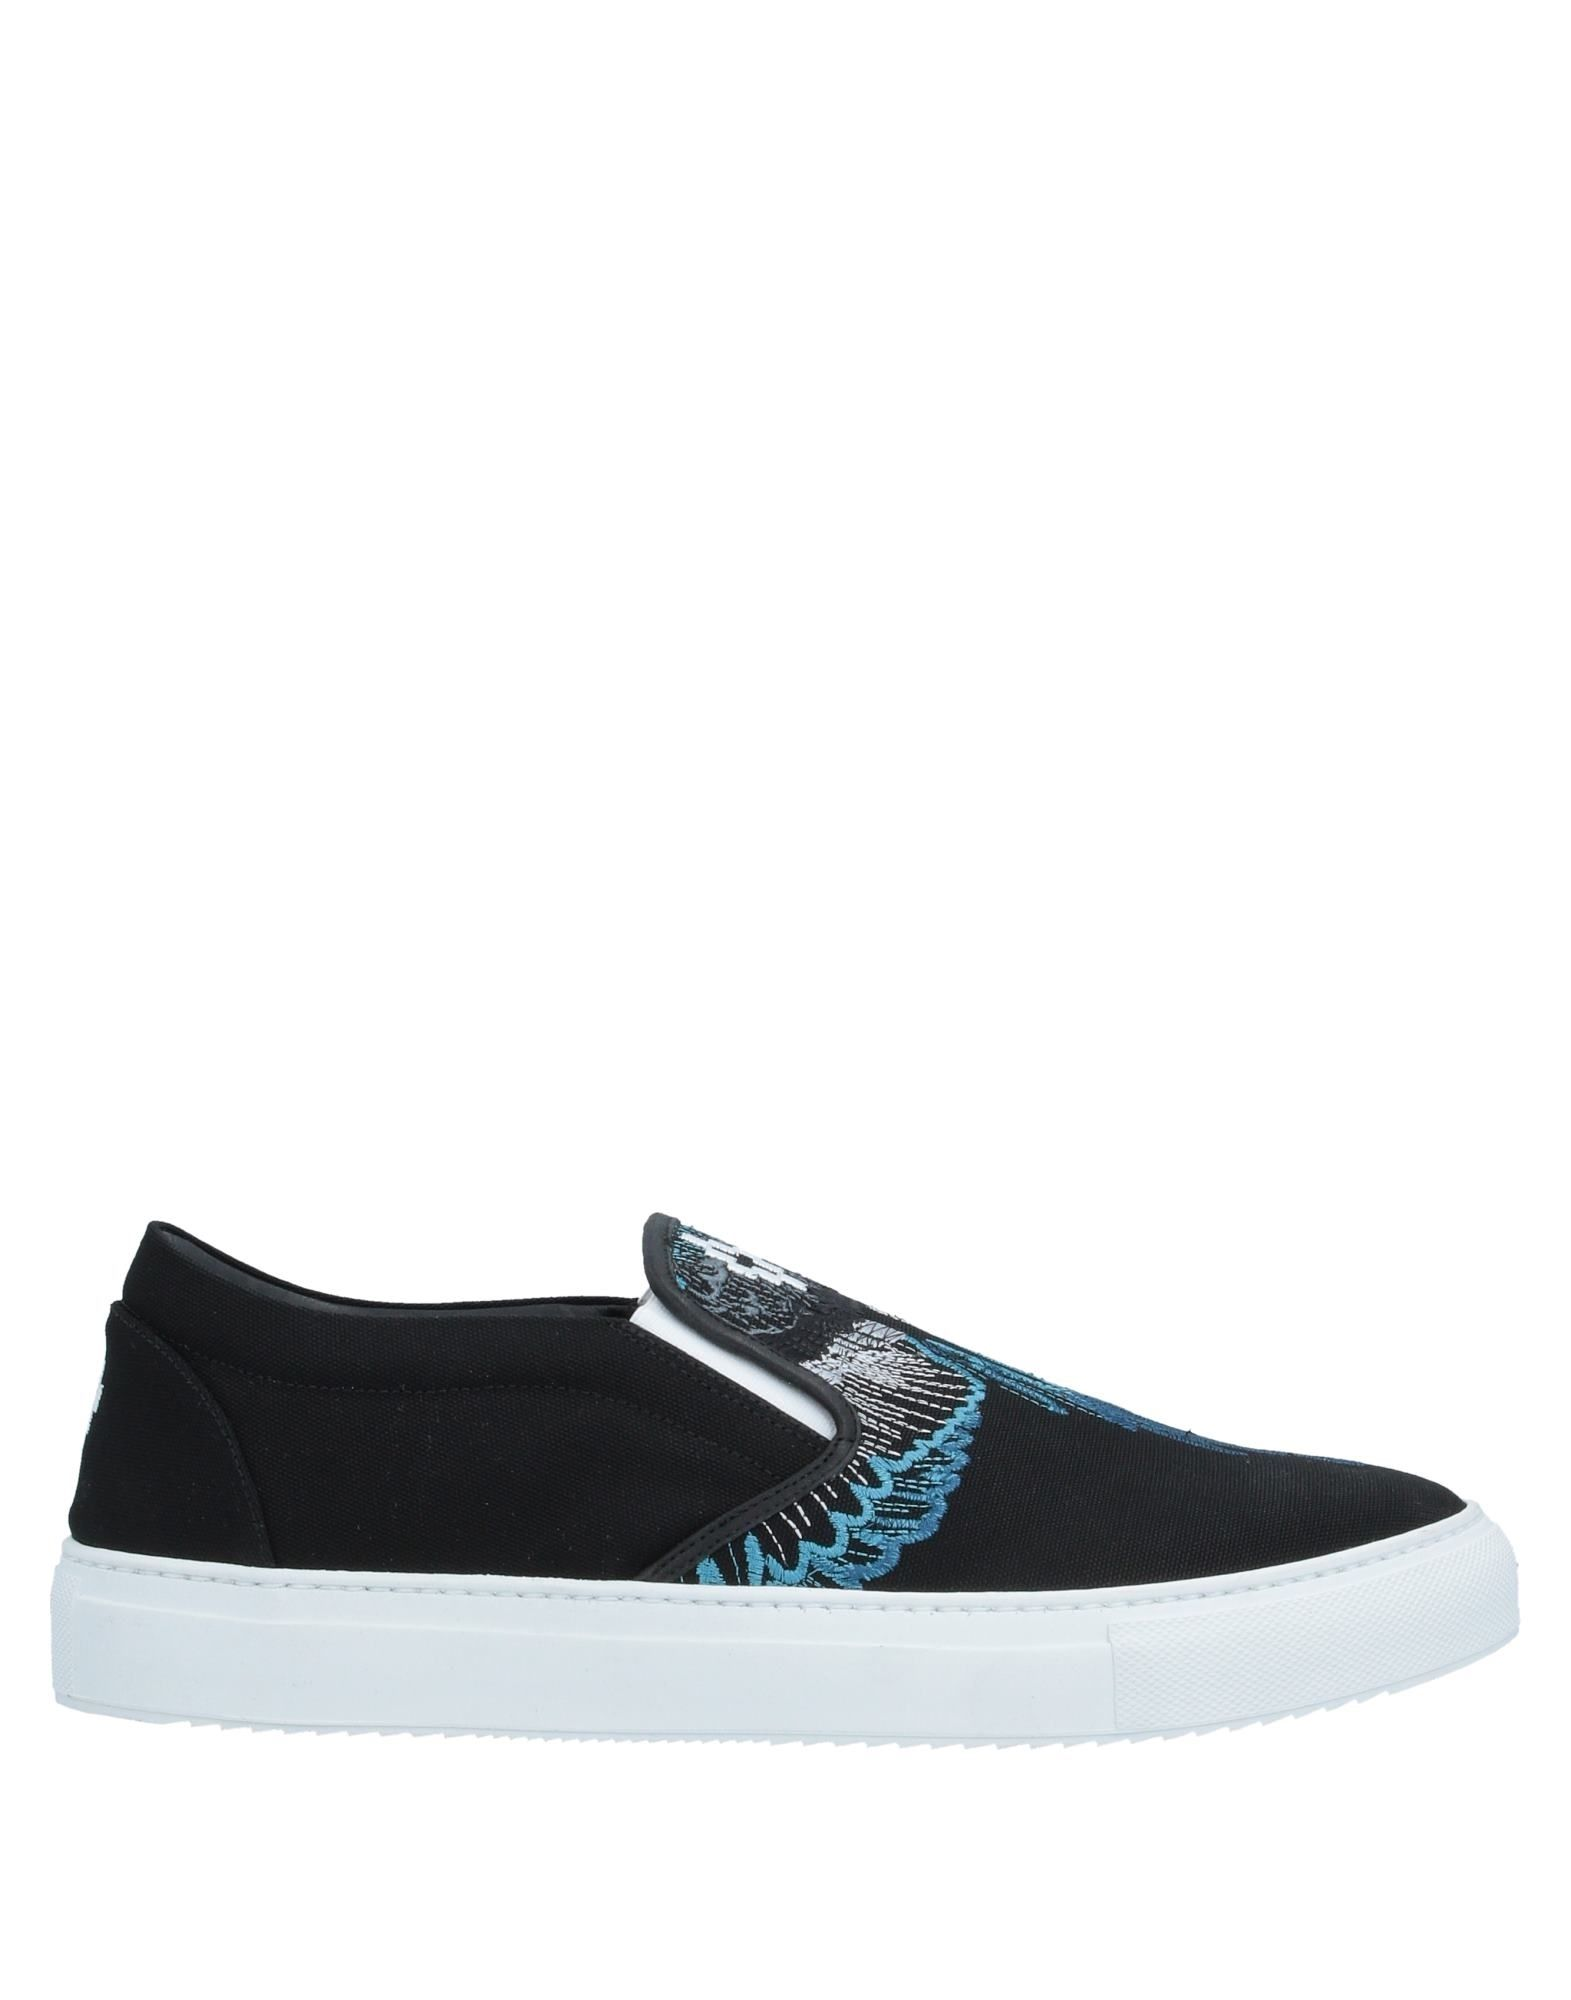 MARCELO BURLON Sneakers. canvas, embroidered detailing, logo, solid color, round toeline, flat, leather lining, rubber sole, contains non-textile parts of animal origin. Textile fibers